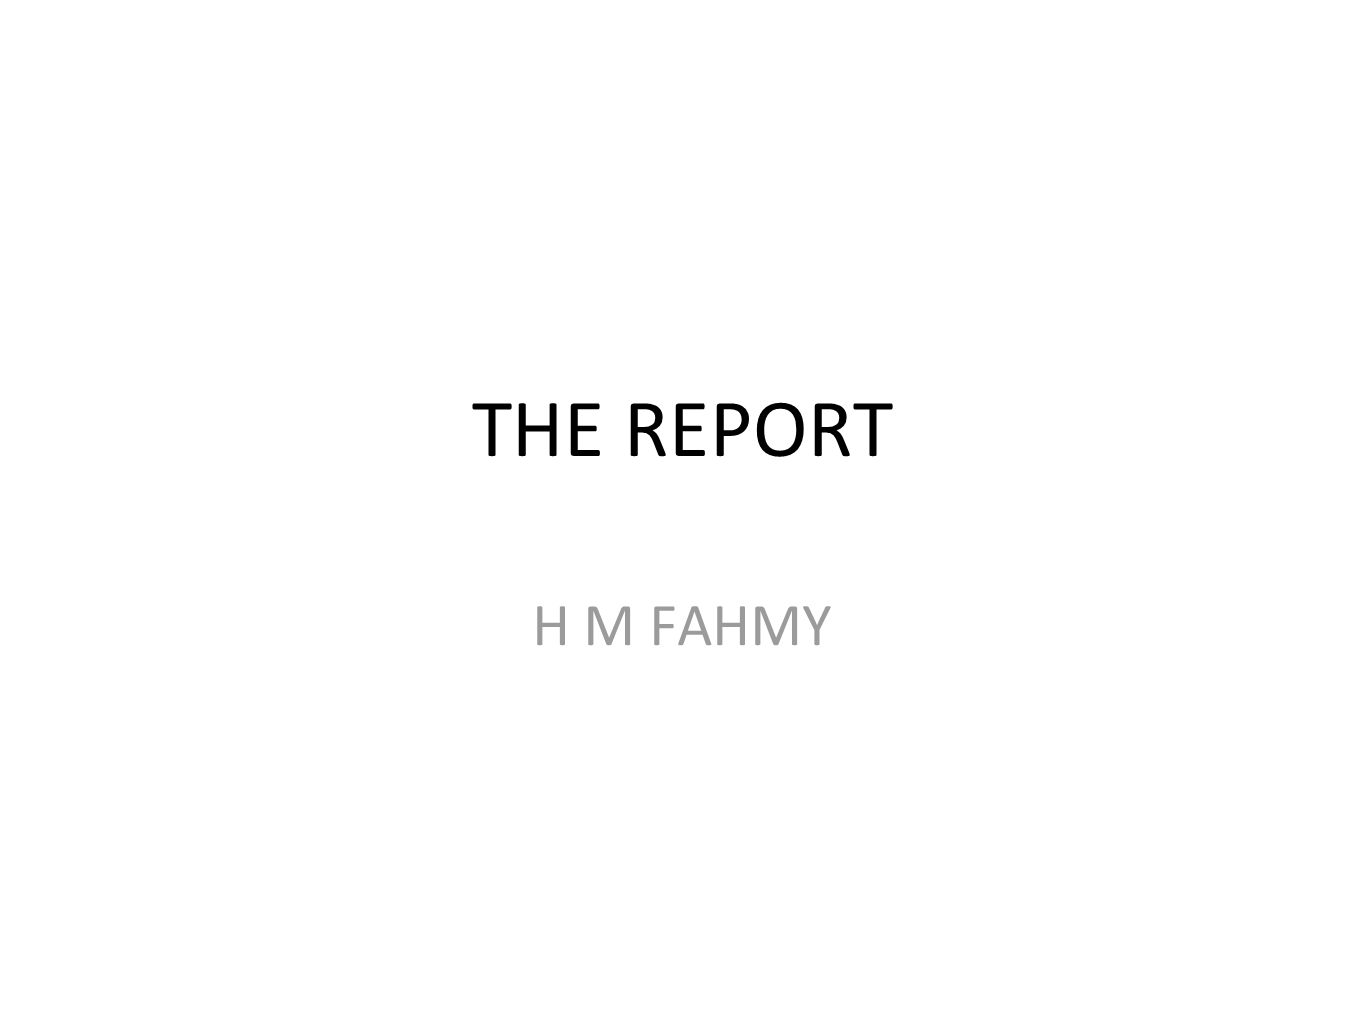 THE REPORT H M FAHMY